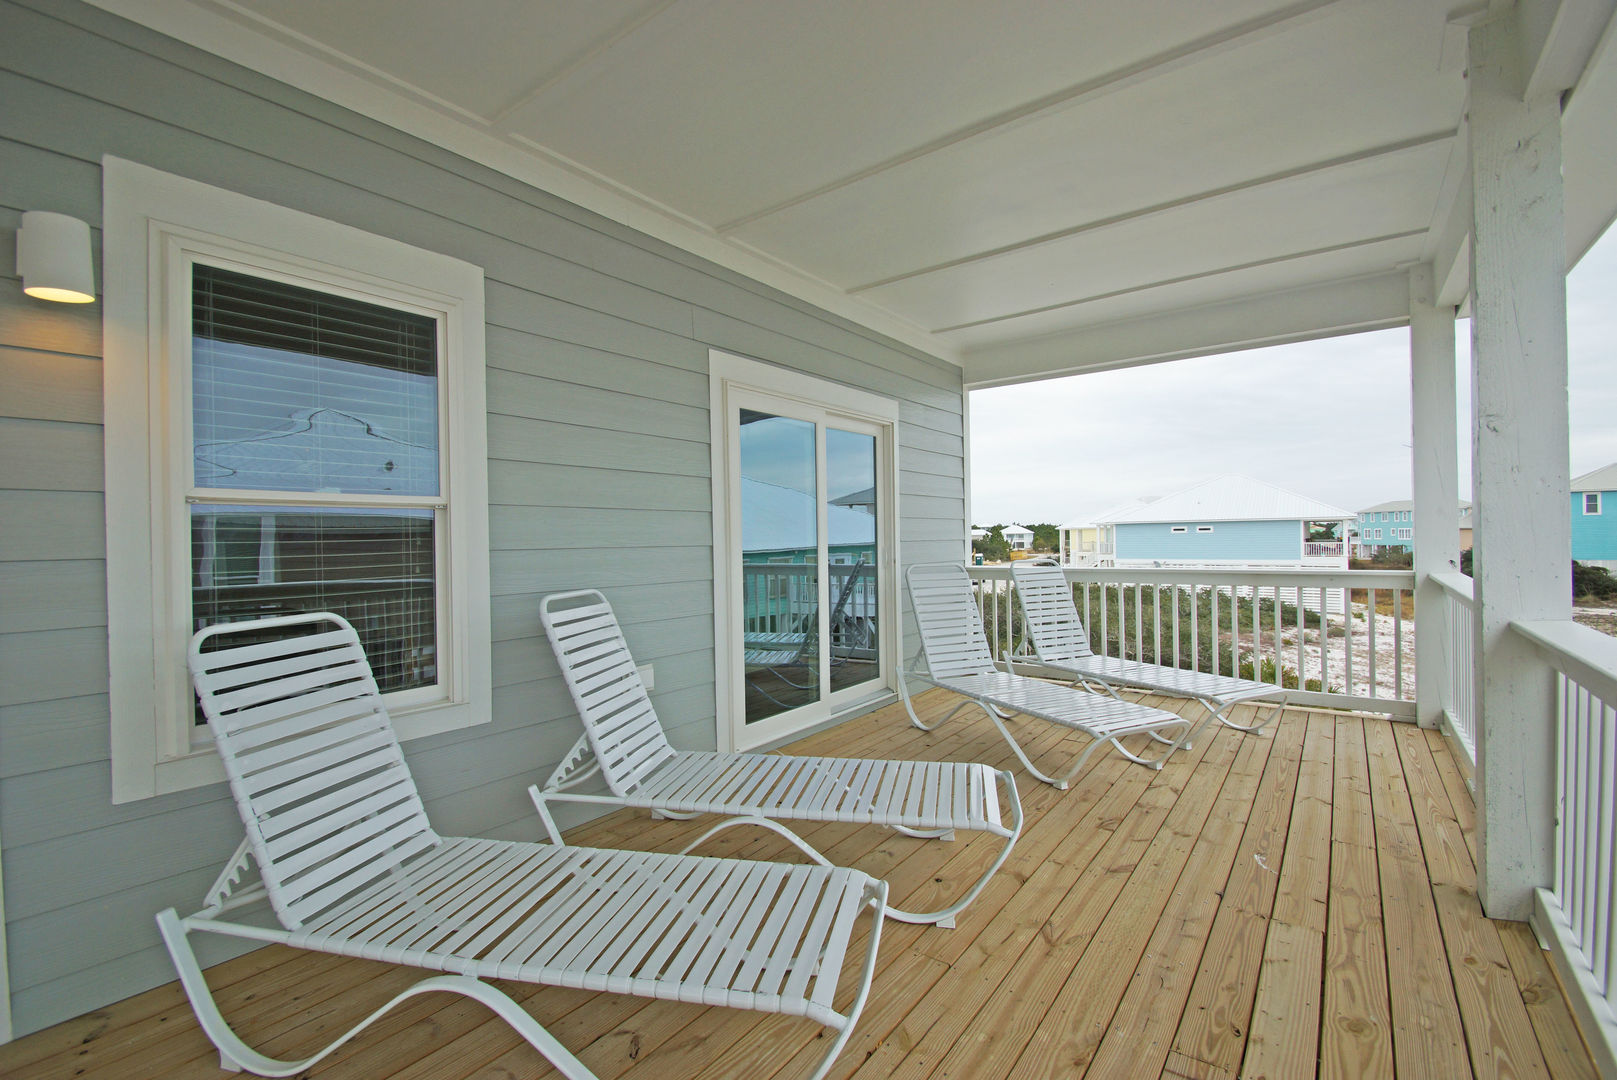 Plenty of area to lounge on the covered balcony with these lounge chairs.